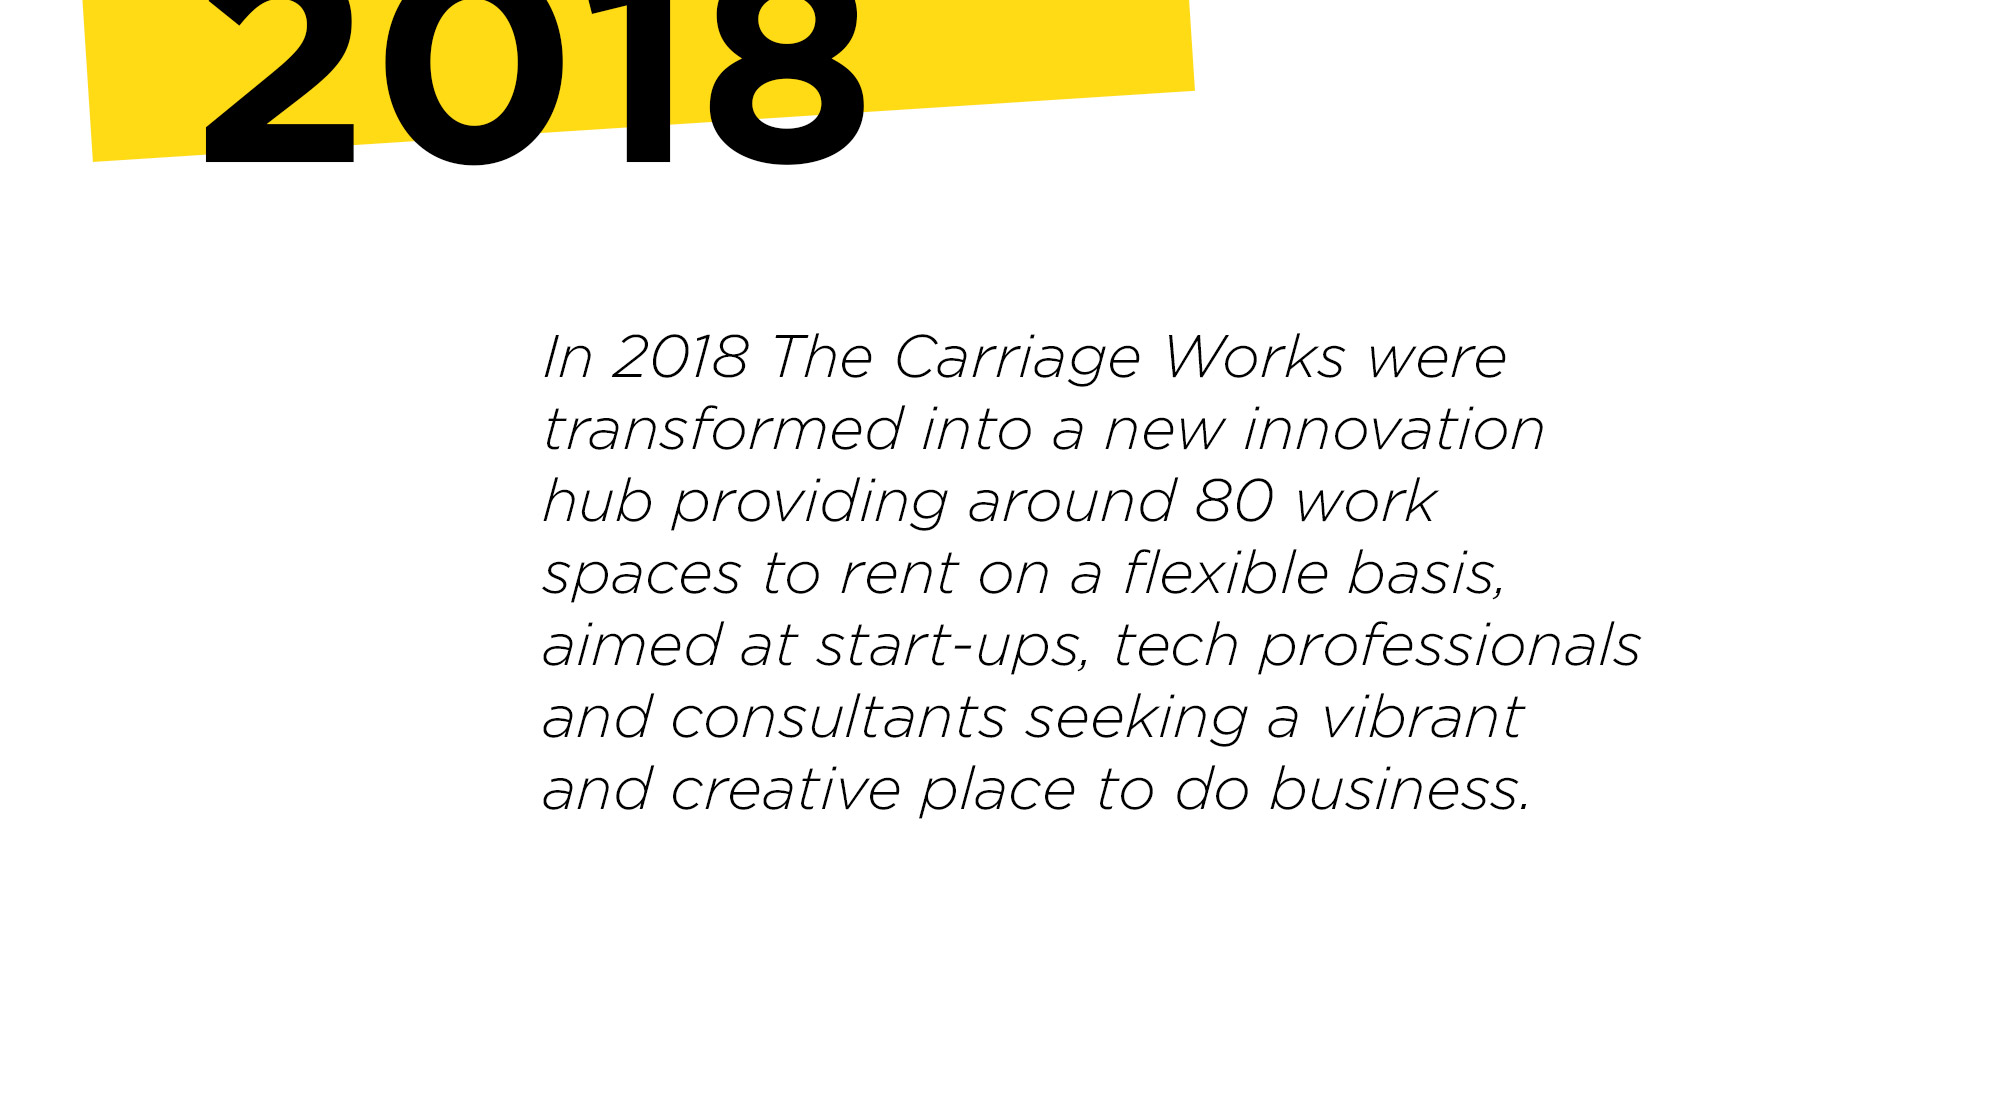 in 2018 the carriage works were transformed into a new innovation hub